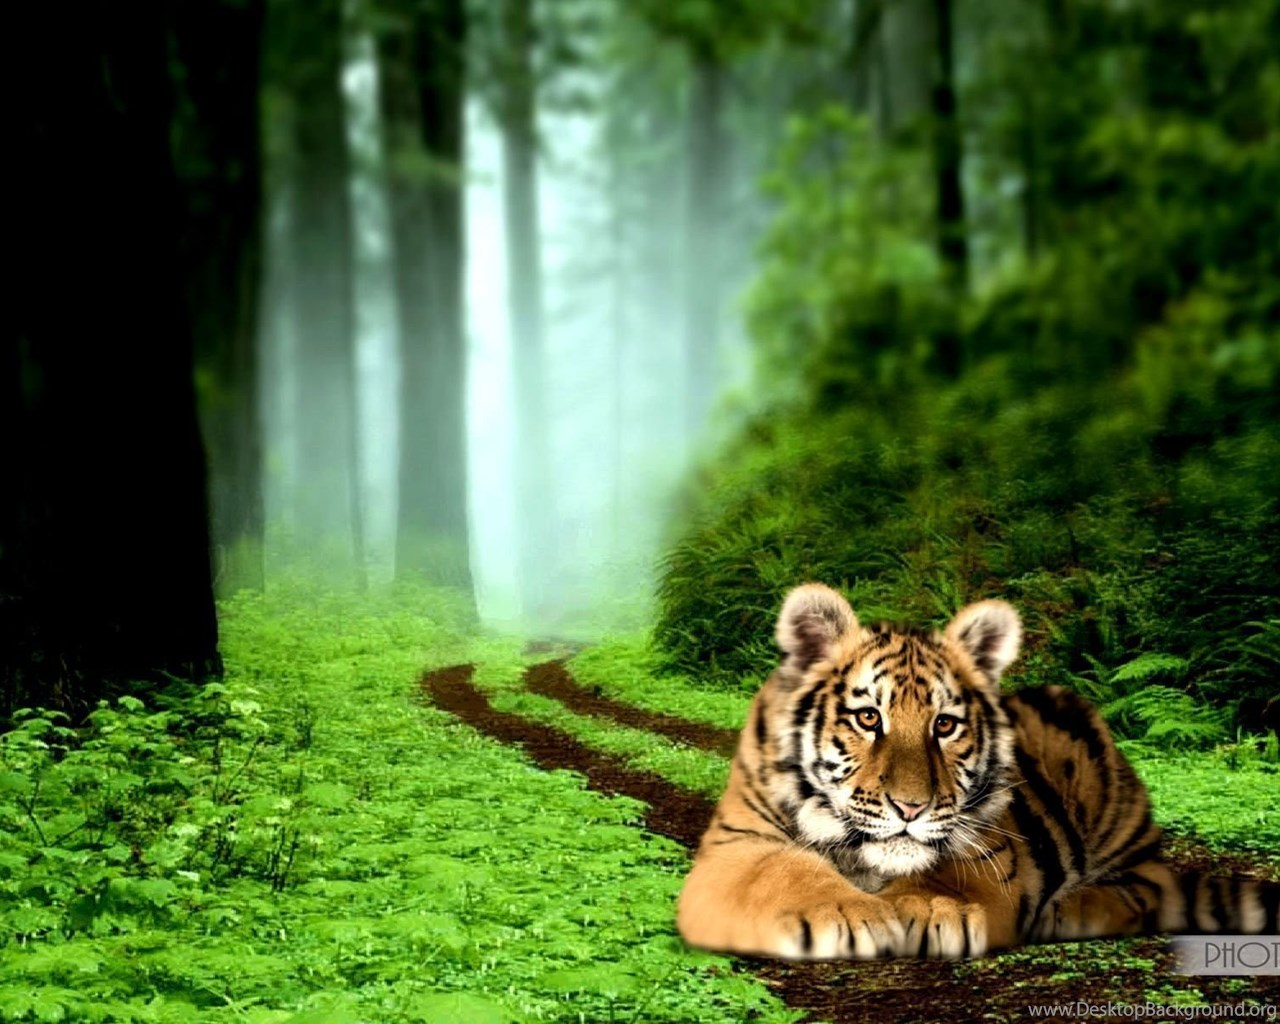 tiger high resolution backgrounds cool / wallpapers tiger 10821 high